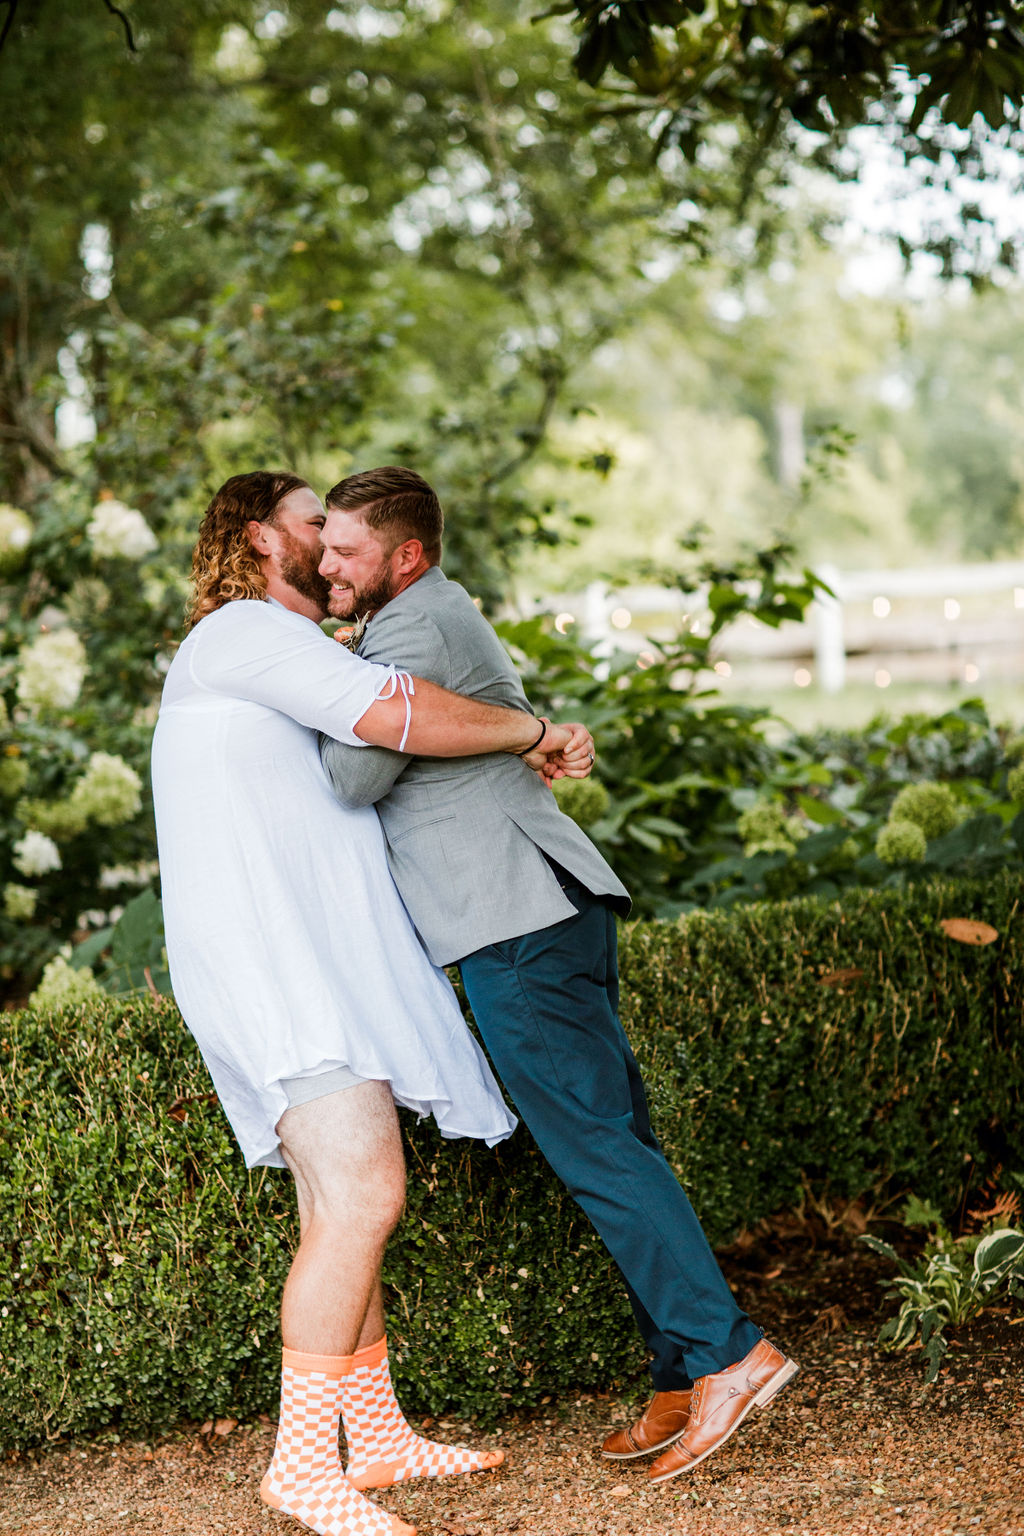 Playful first look with groomsmen | Nashville Bride Guide